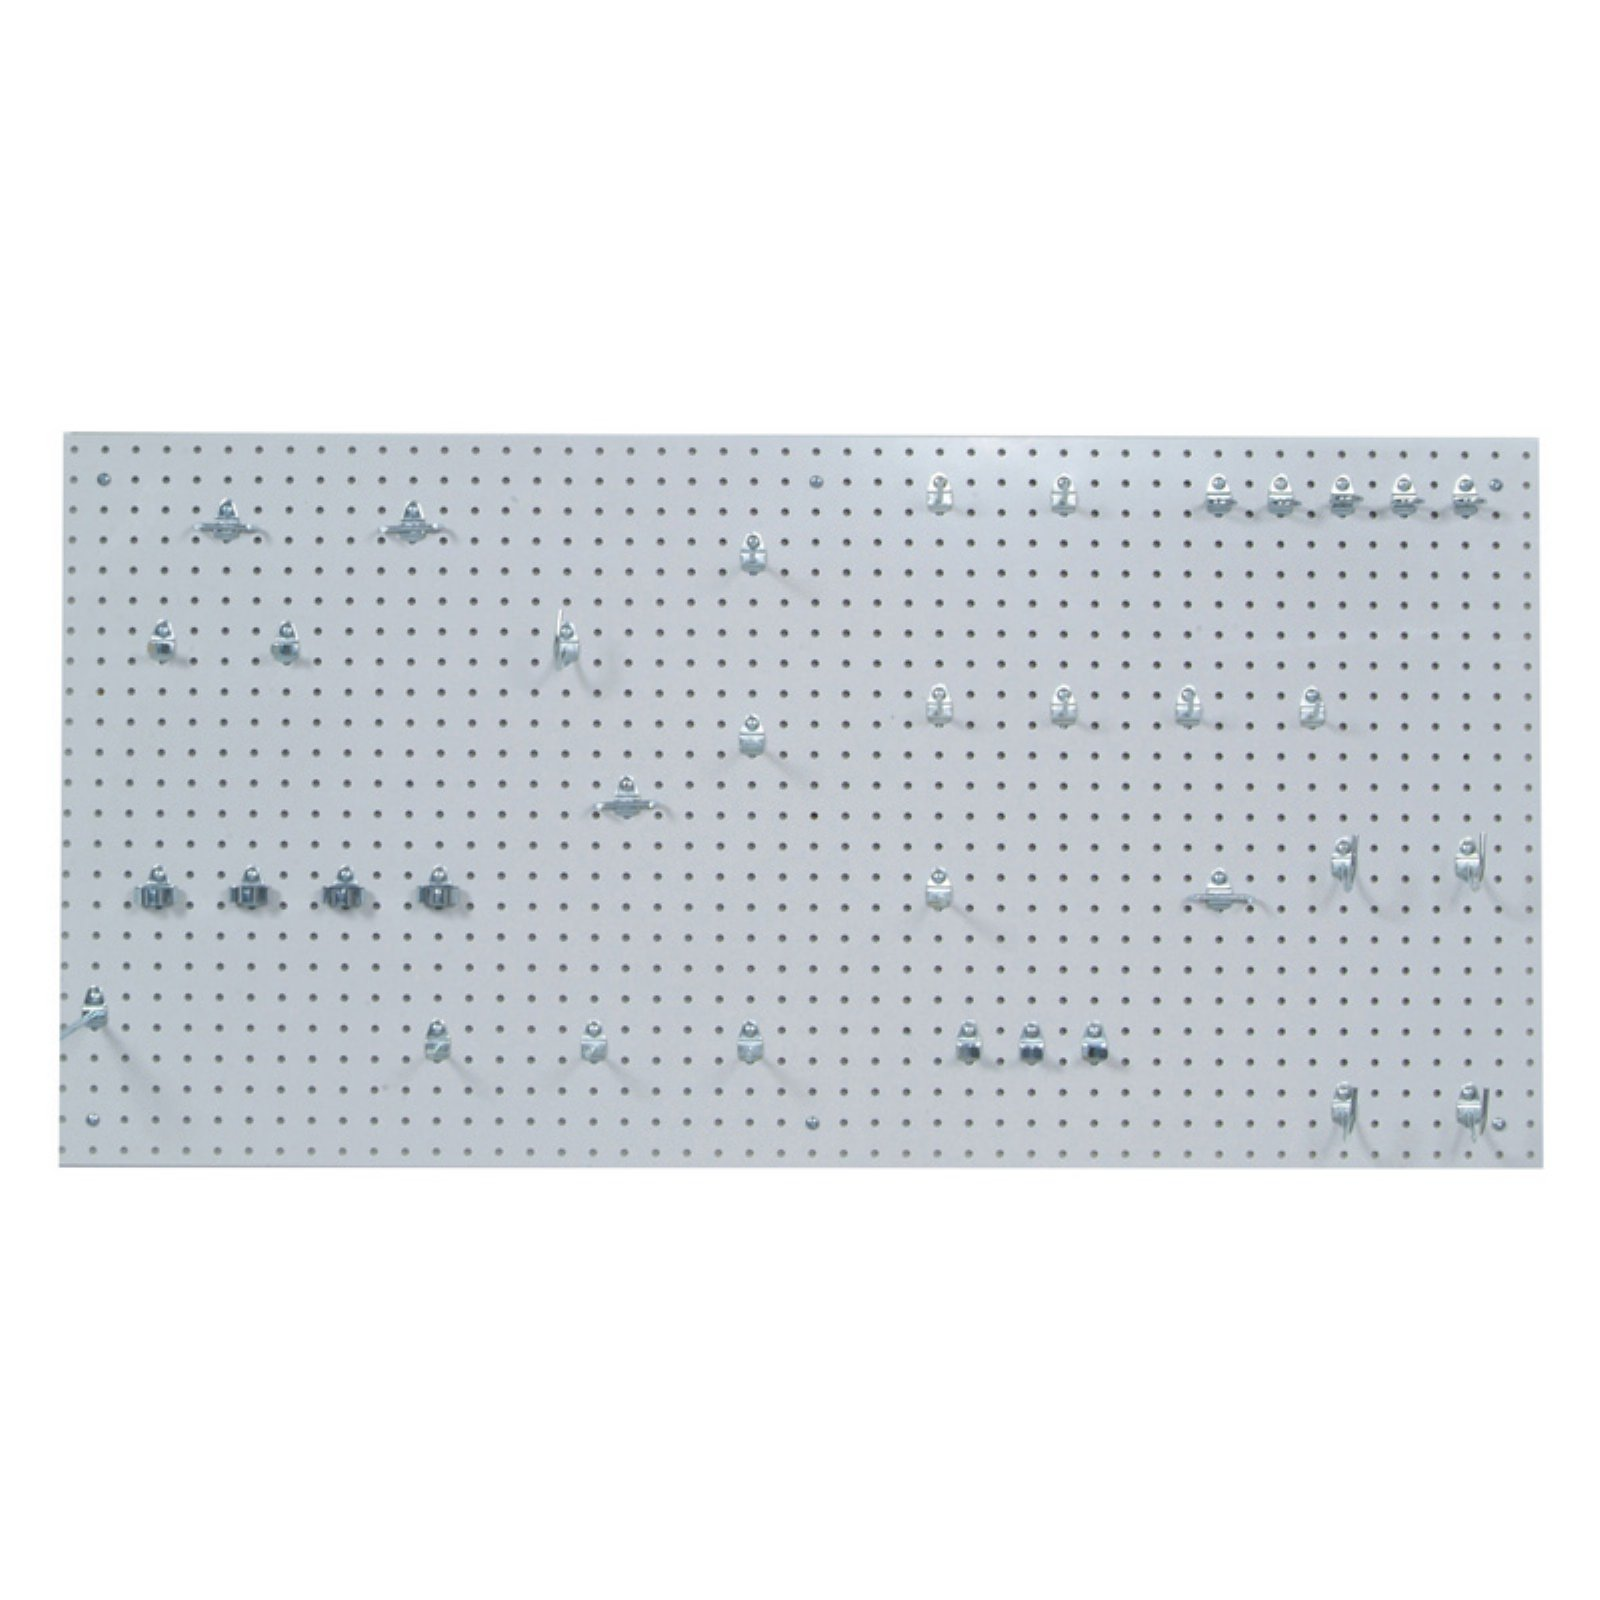 24 In. W x 48 In. H x 1/4 In. D White Polypropylene Pegboards with 36 pc. Locking Hook Assortment